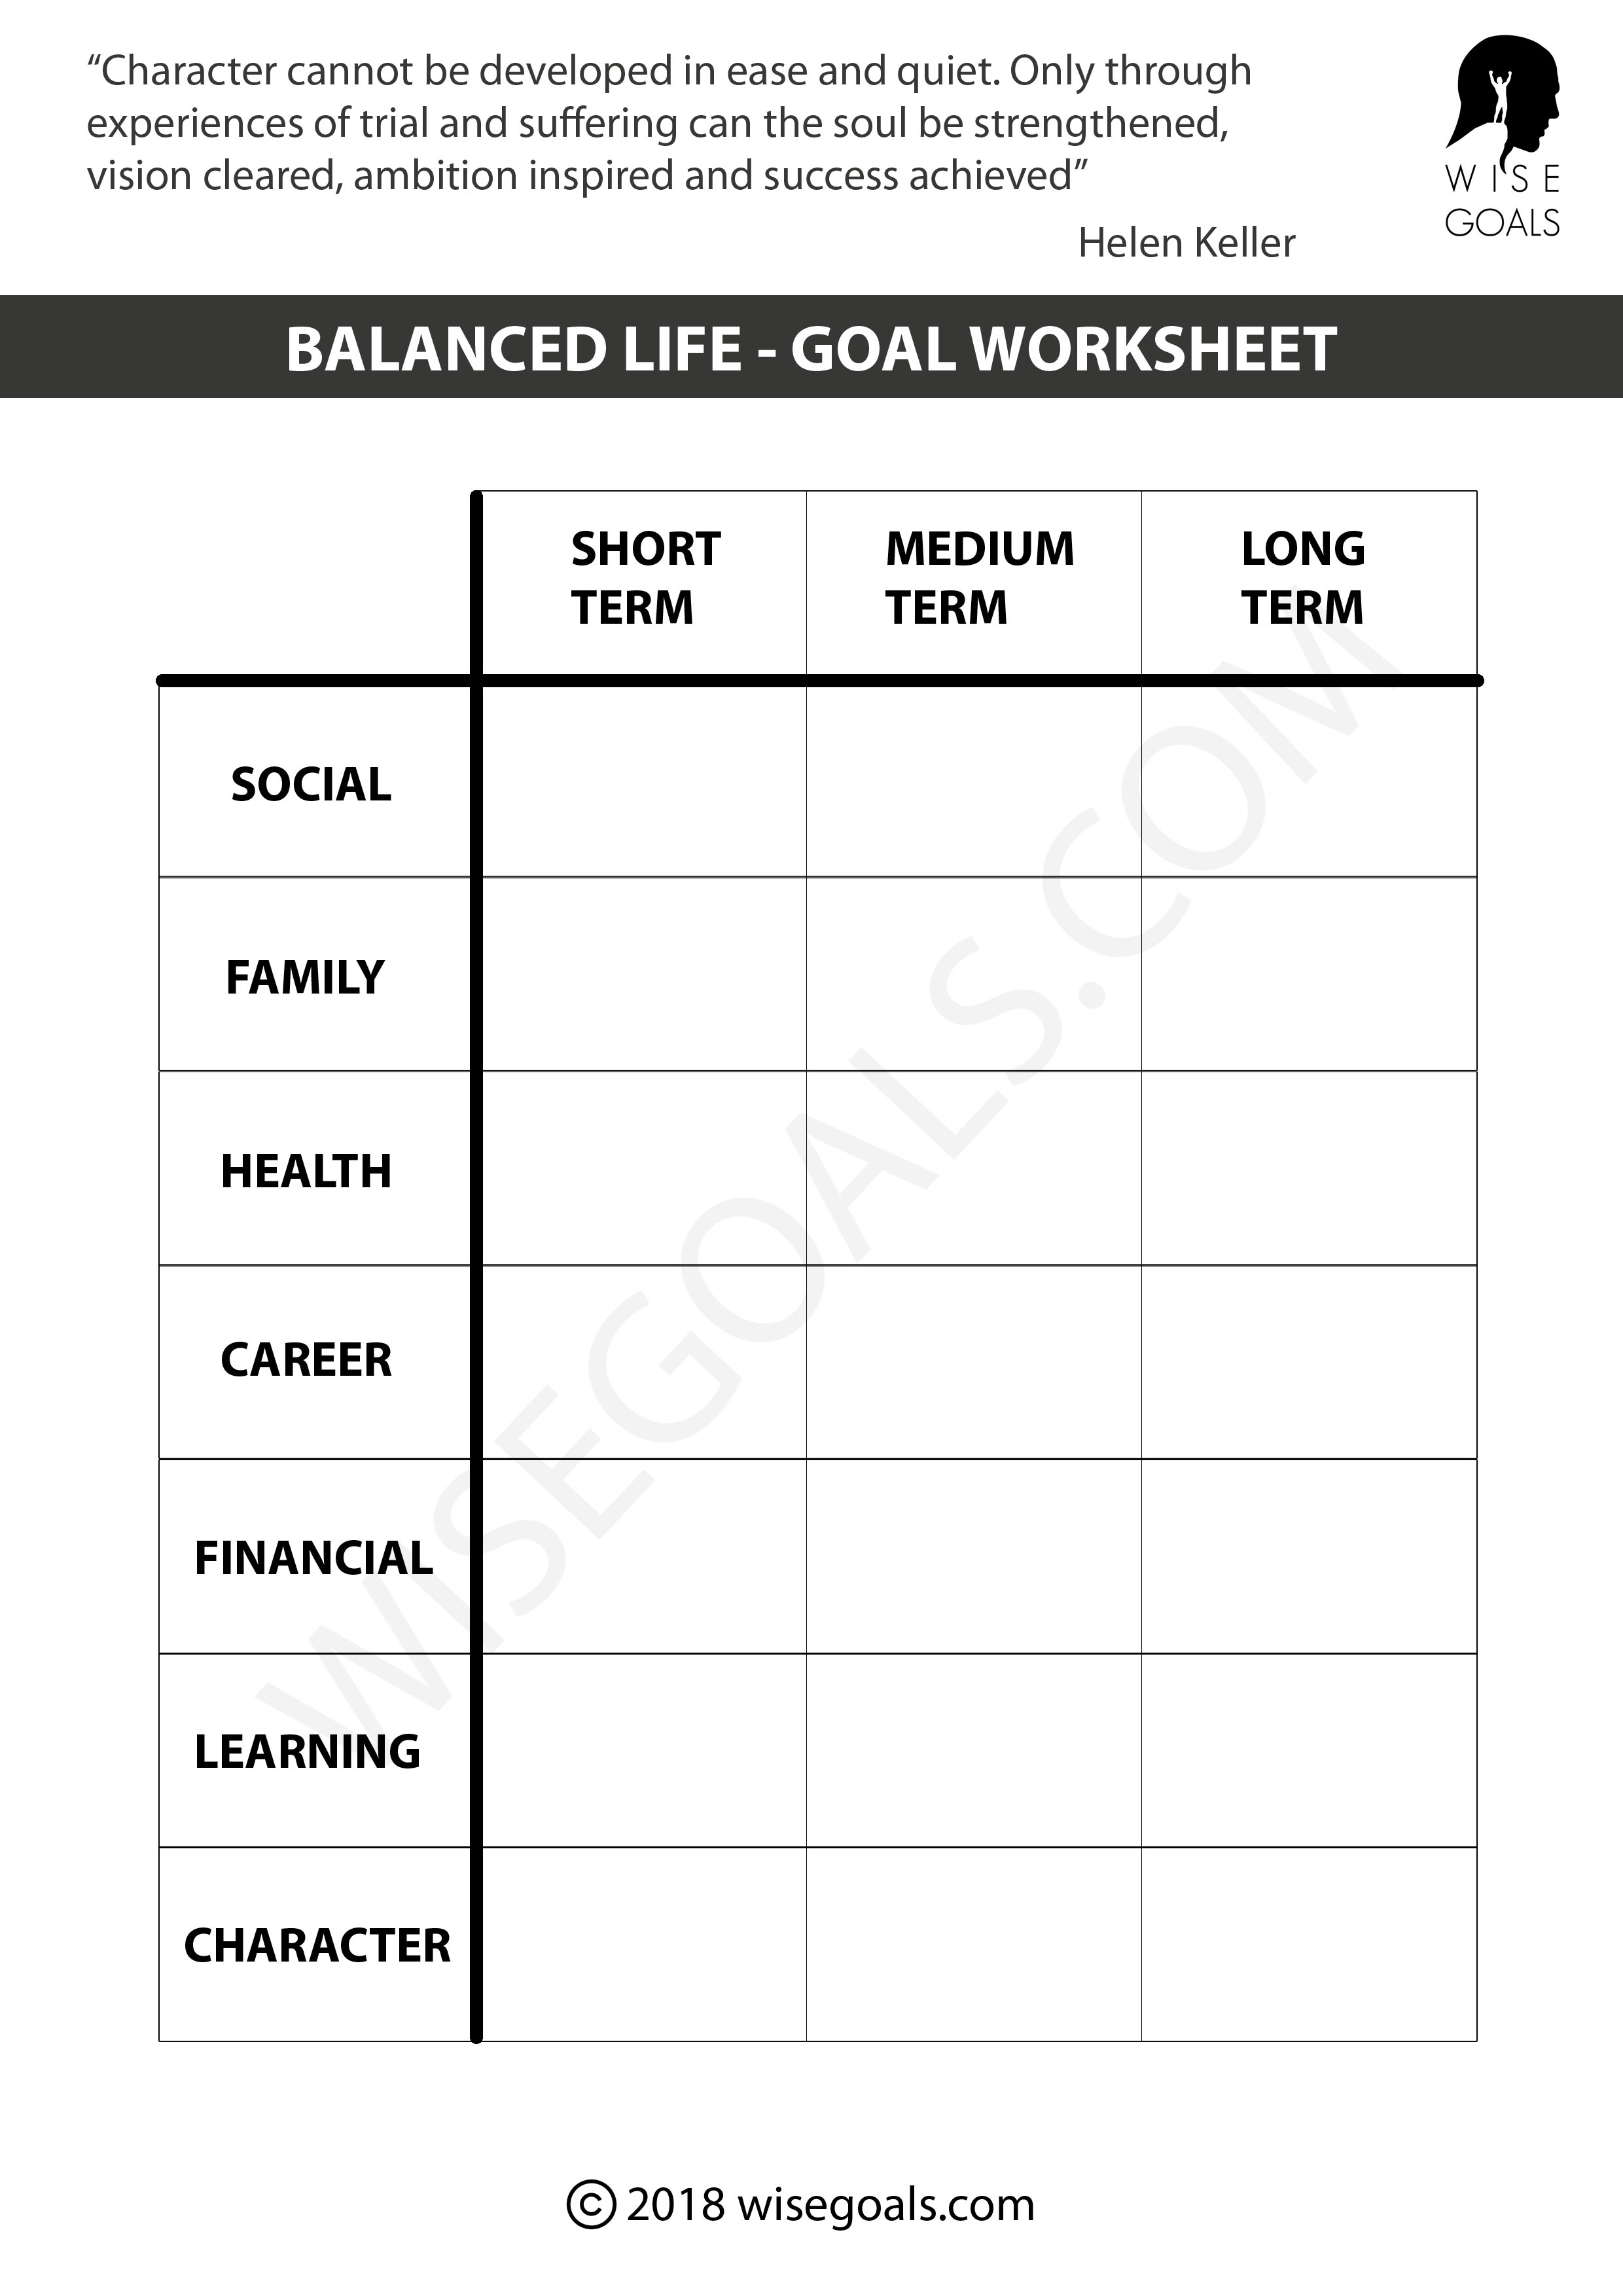 Worksheets Short And Long Term Goals Worksheet 5 personal goal setting worksheets printable pdf long medium and short term goals in each area